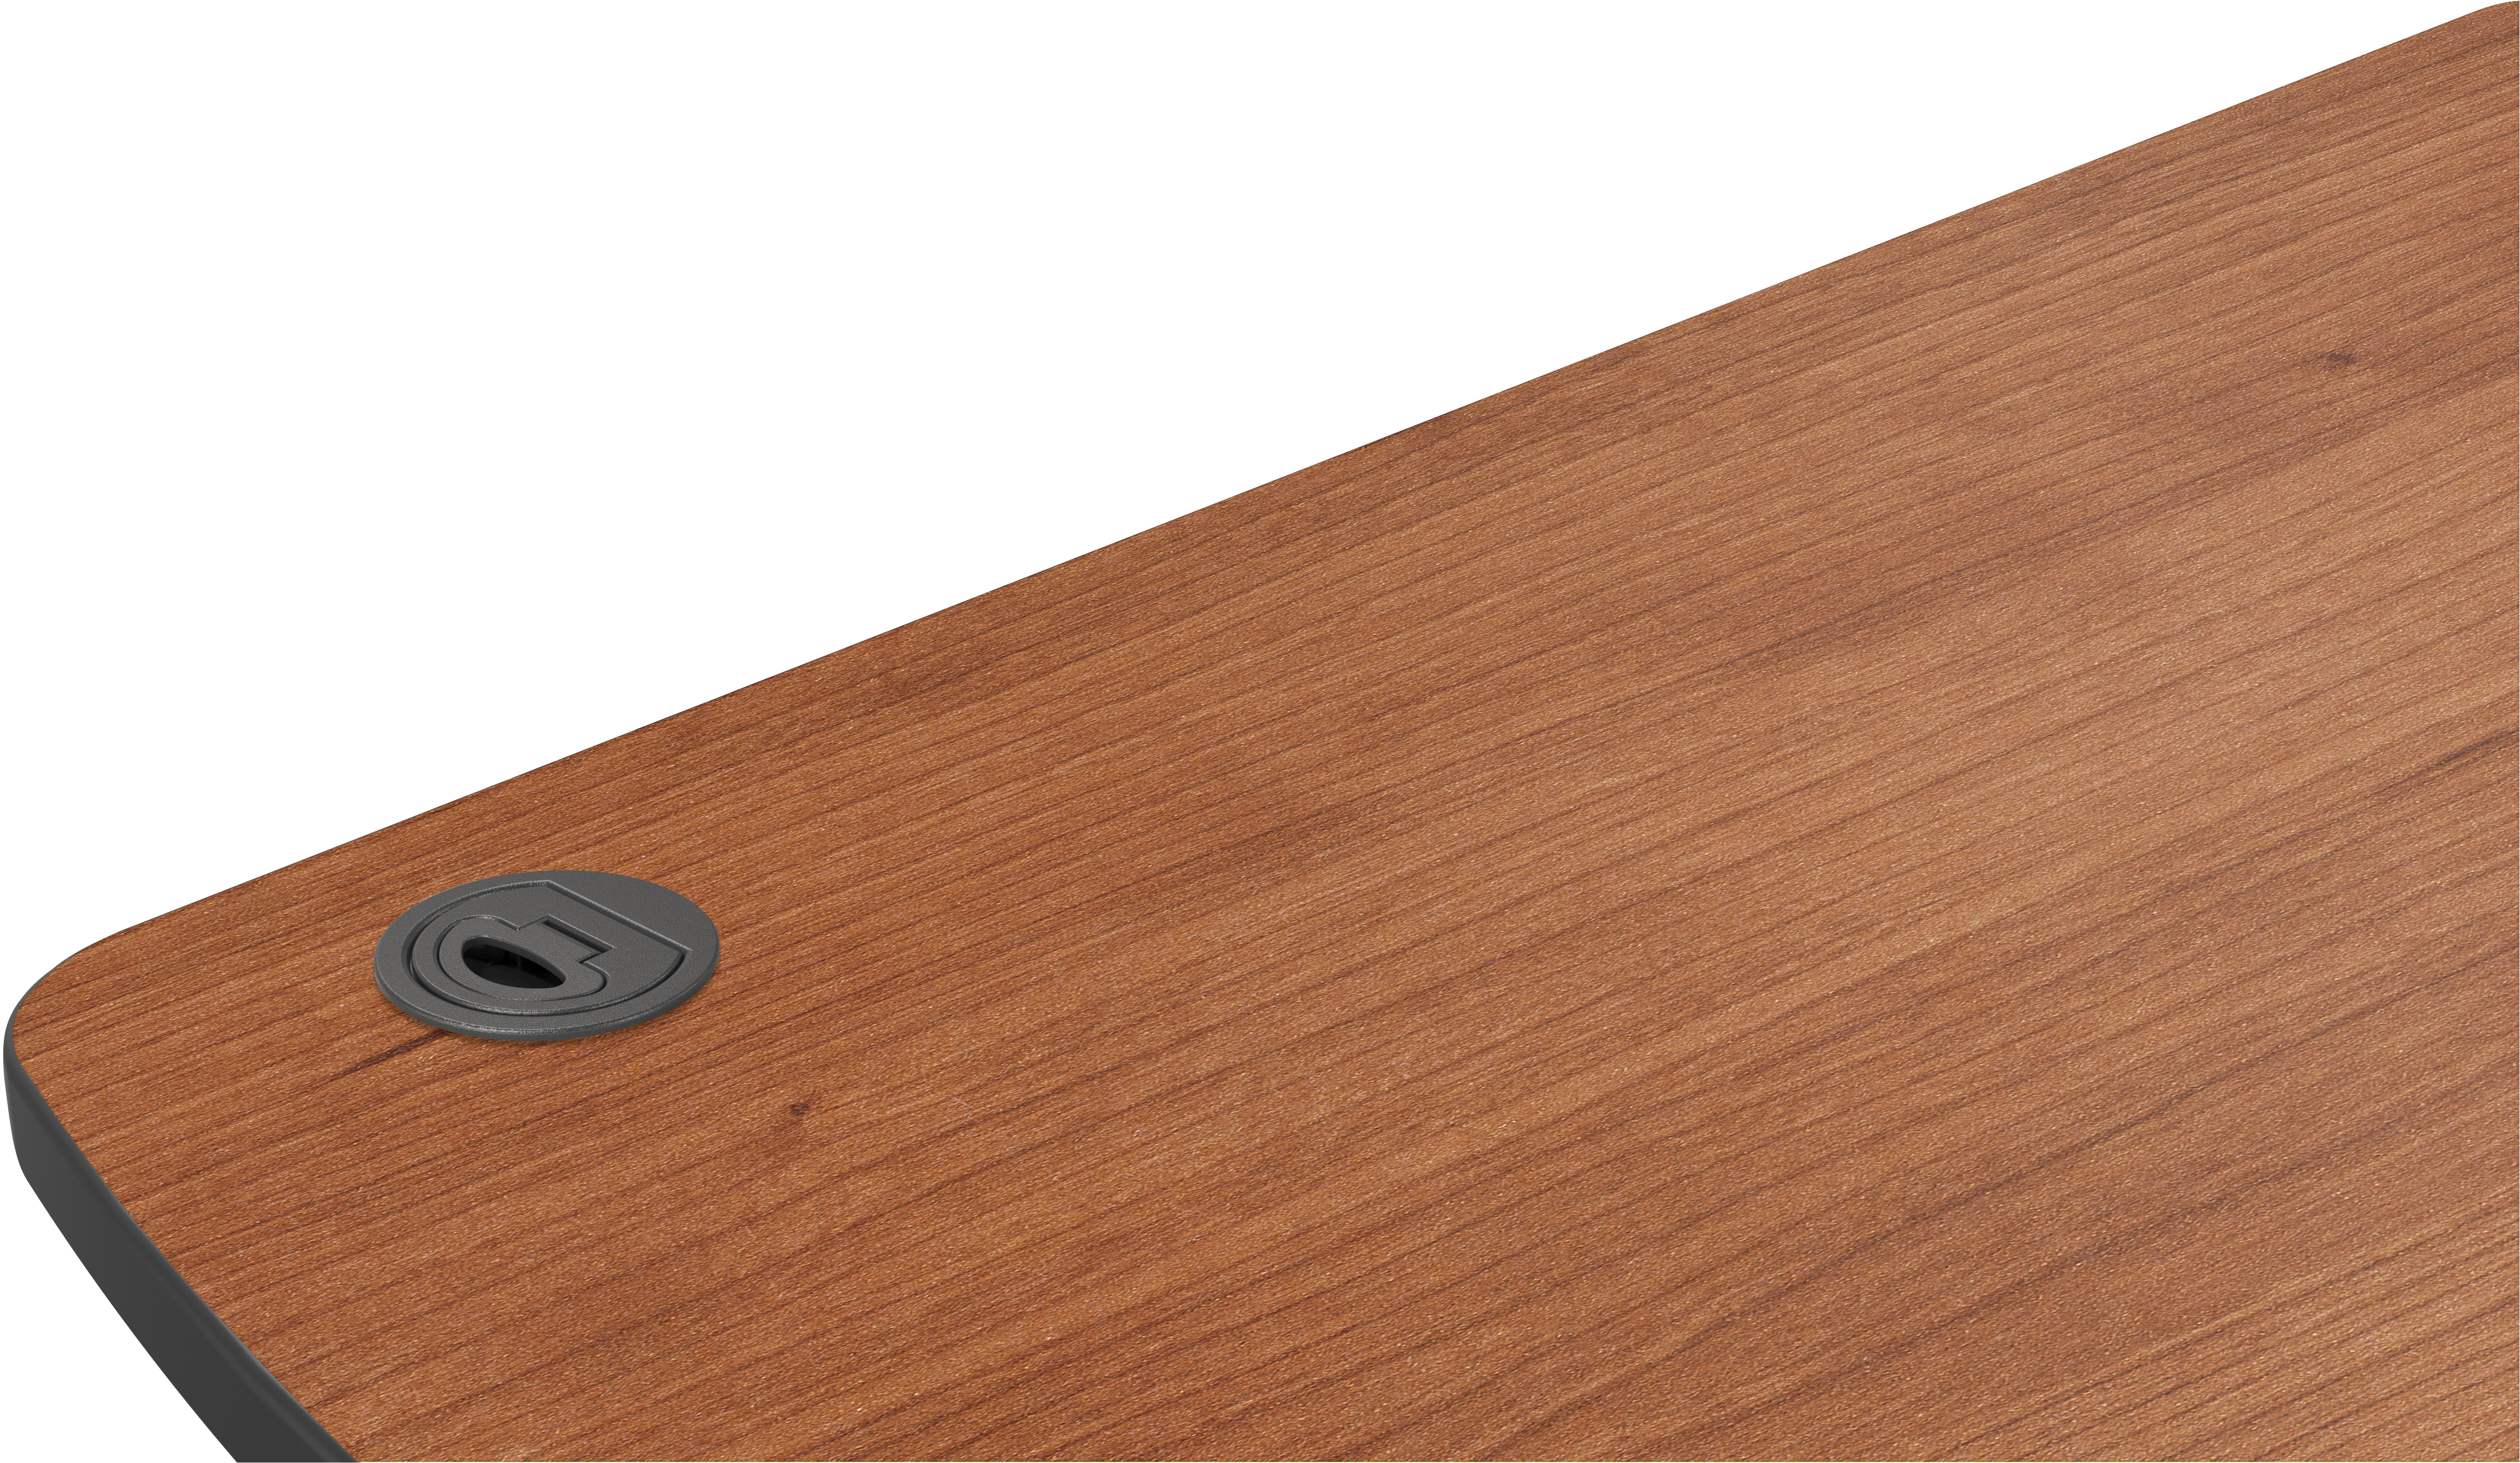 electrical superlative most with power in furniture table desk grommets and data design cord hole outlet